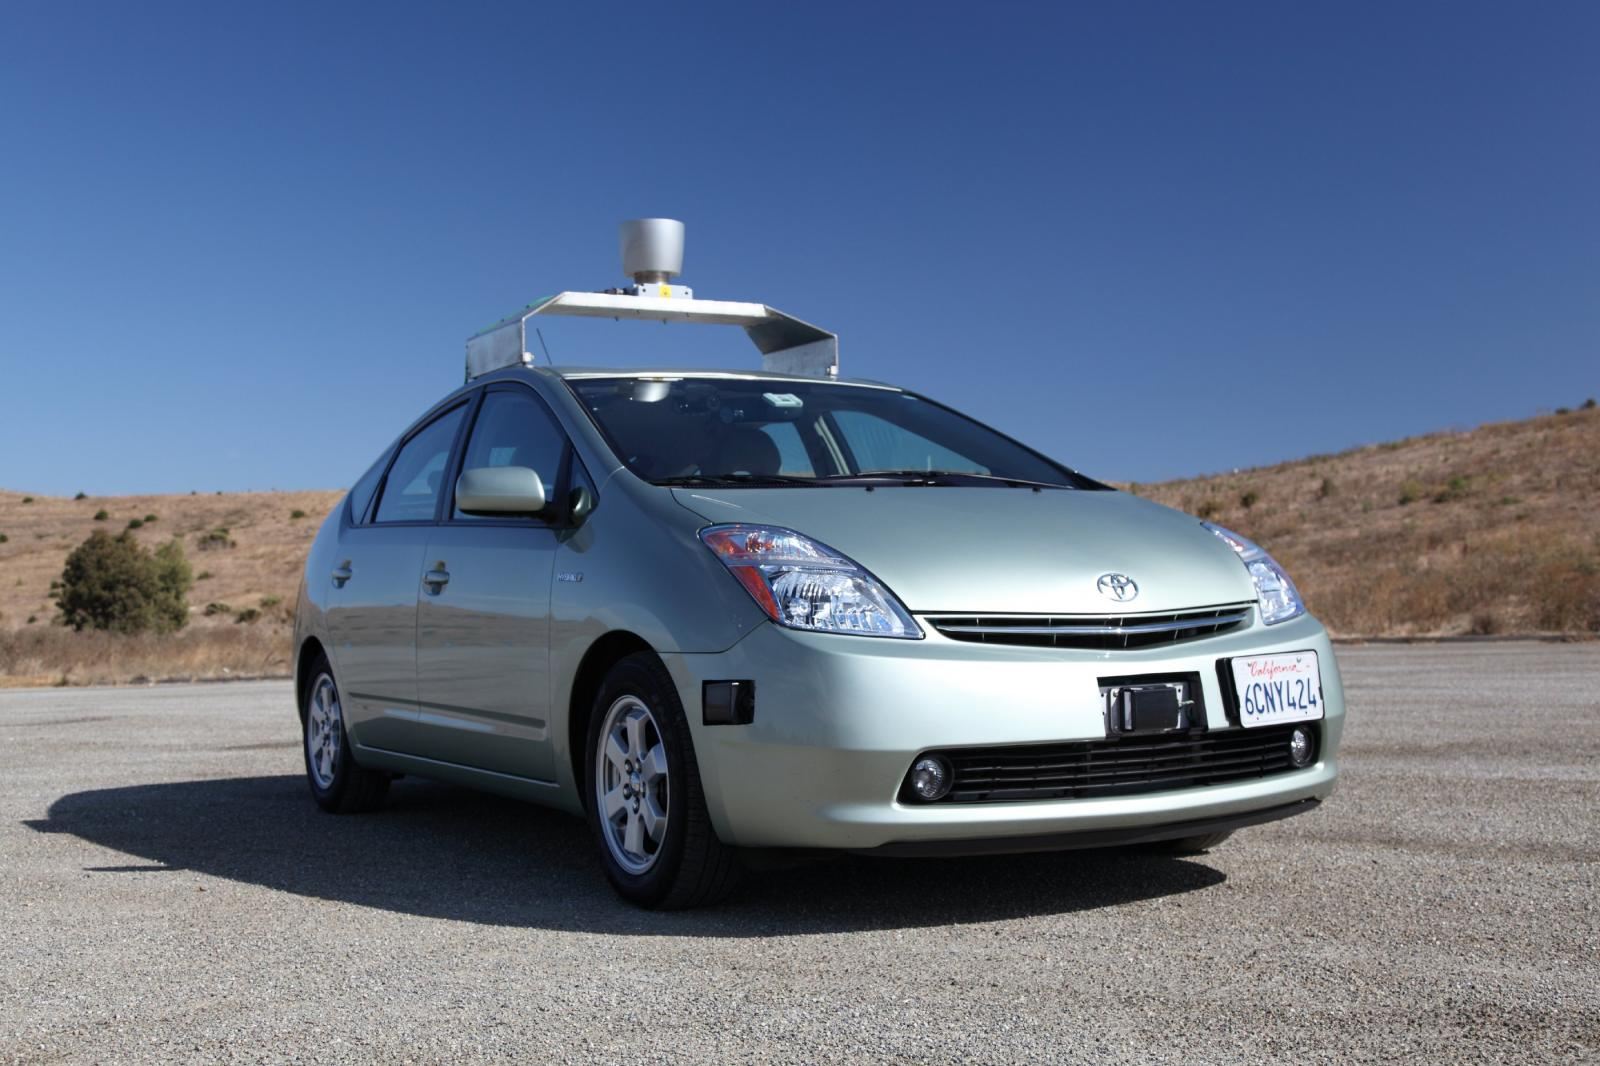 Google&#8217;s autonomous vehicle got its driving license